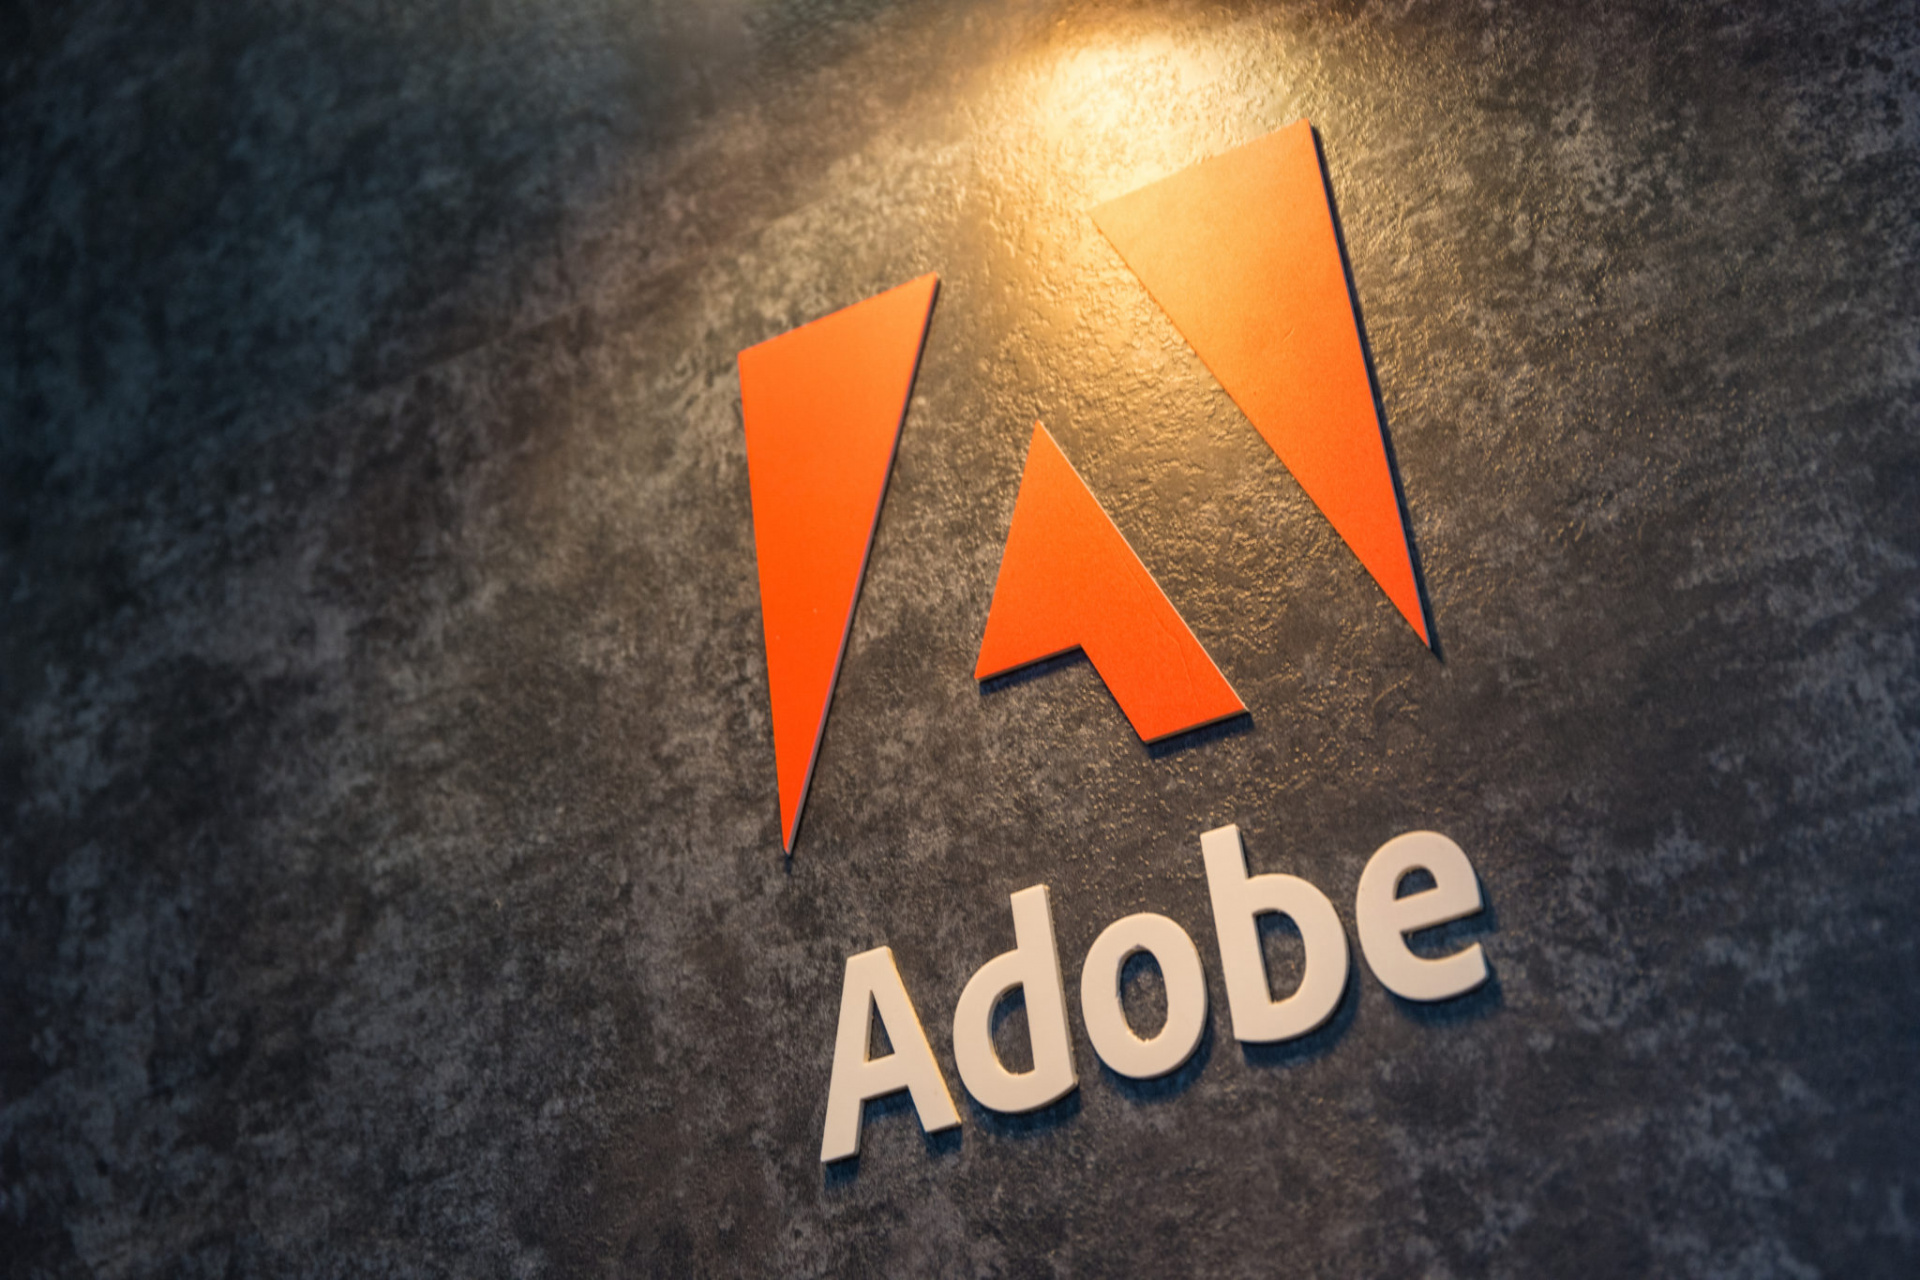 Adobe's Earnings Report: Another Stellar Quarter amidst Stormy Markets